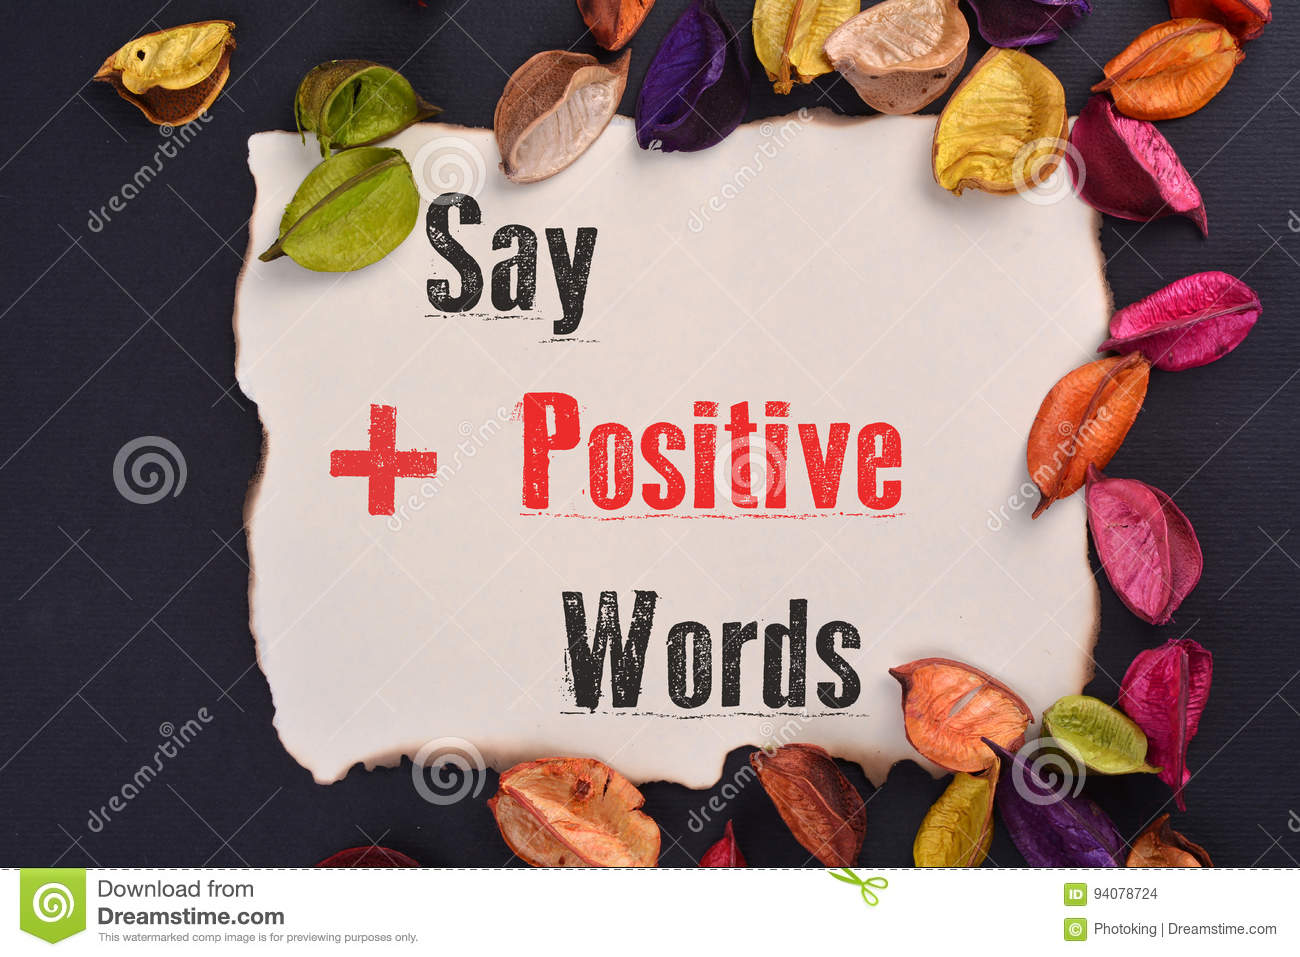 Say Positive Words